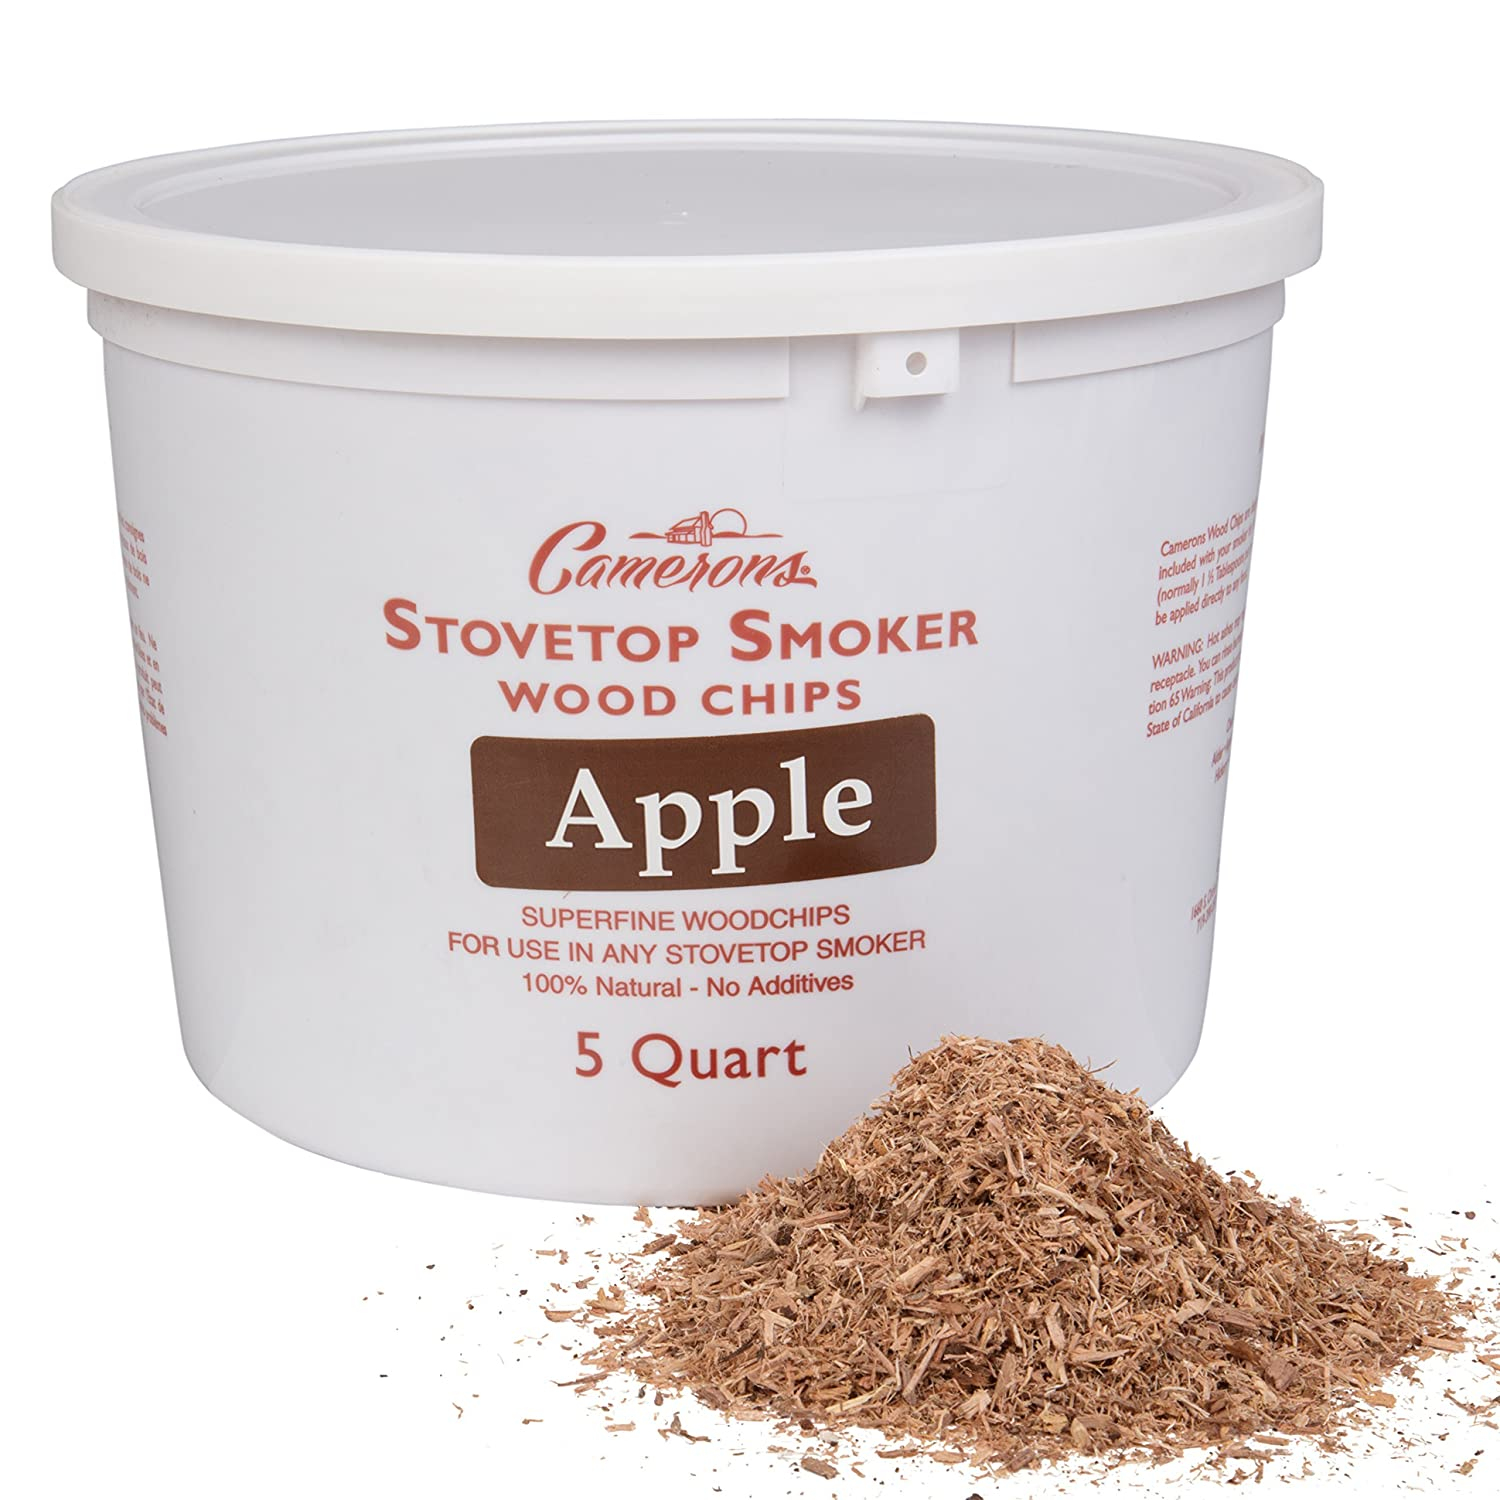 Camerons Smoking Chips - (Apple) Kiln Dried, 100 Percent Natural Extra Fine Wood Smoker Sawdust Shavings - 5 Quart Barbecue Chips